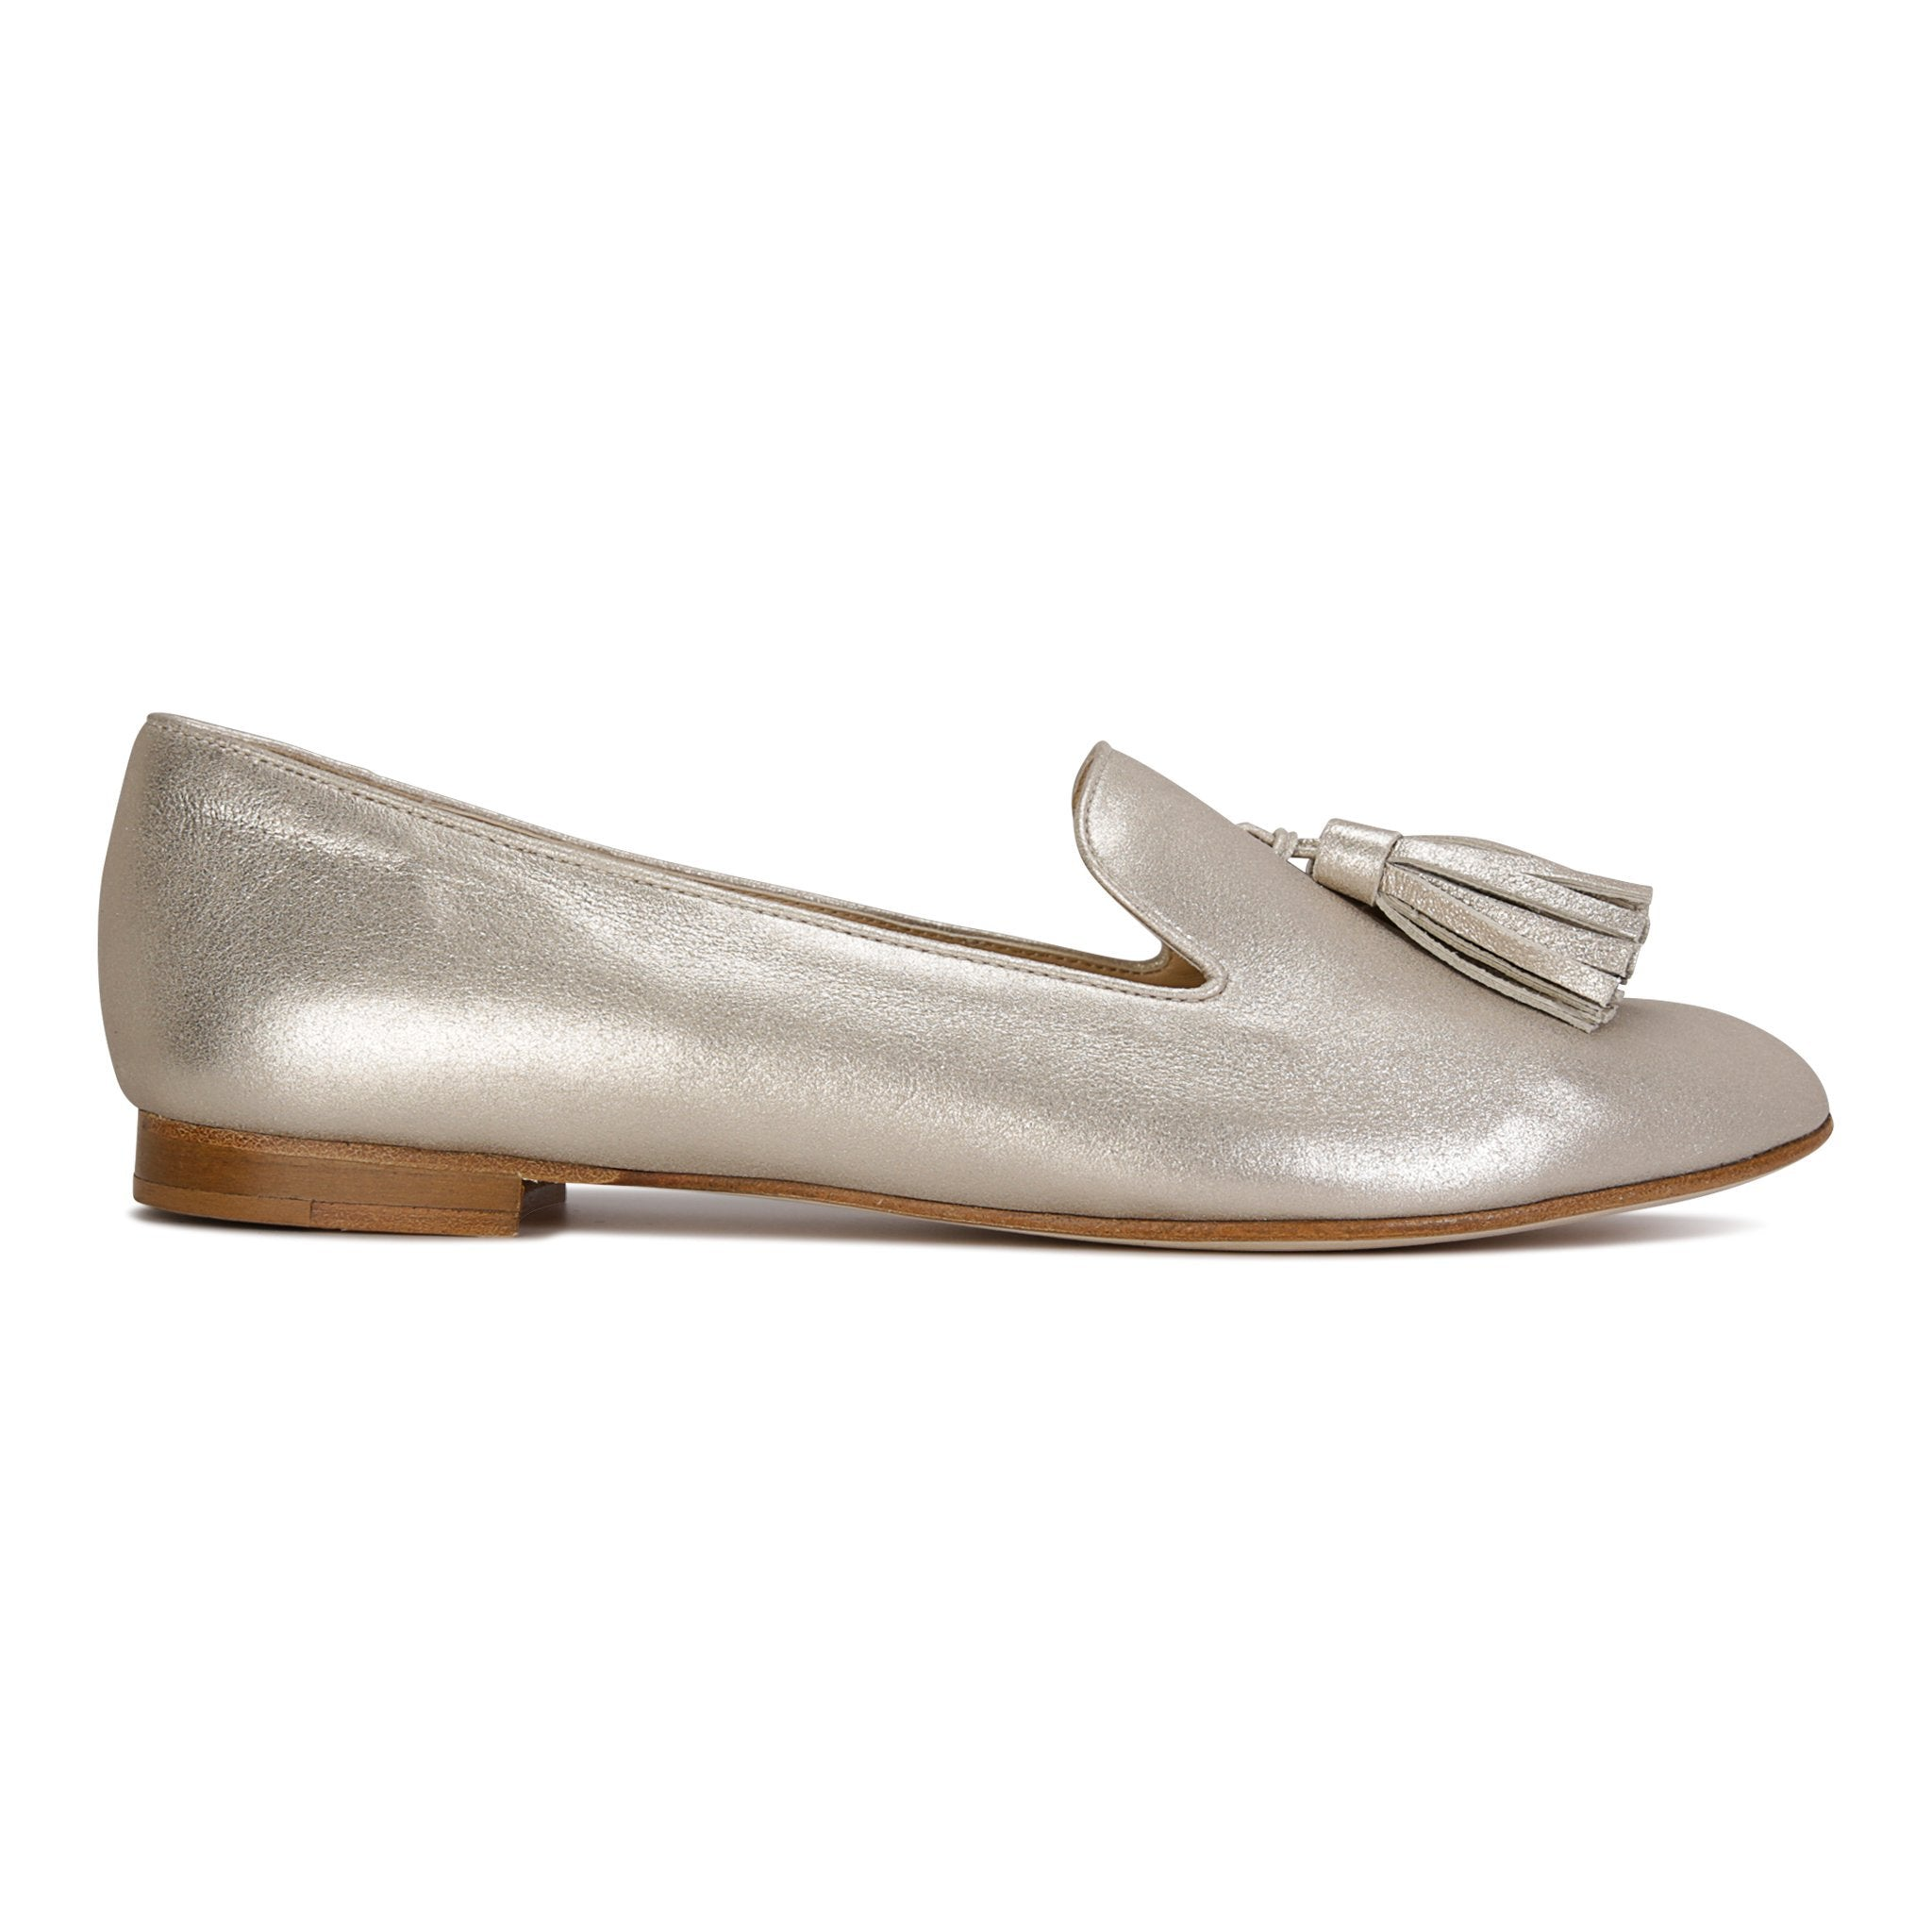 PARMA - Burma Platino, VIAJIYU - Women's Hand Made Sustainable Luxury Shoes. Made in Italy. Made to Order.